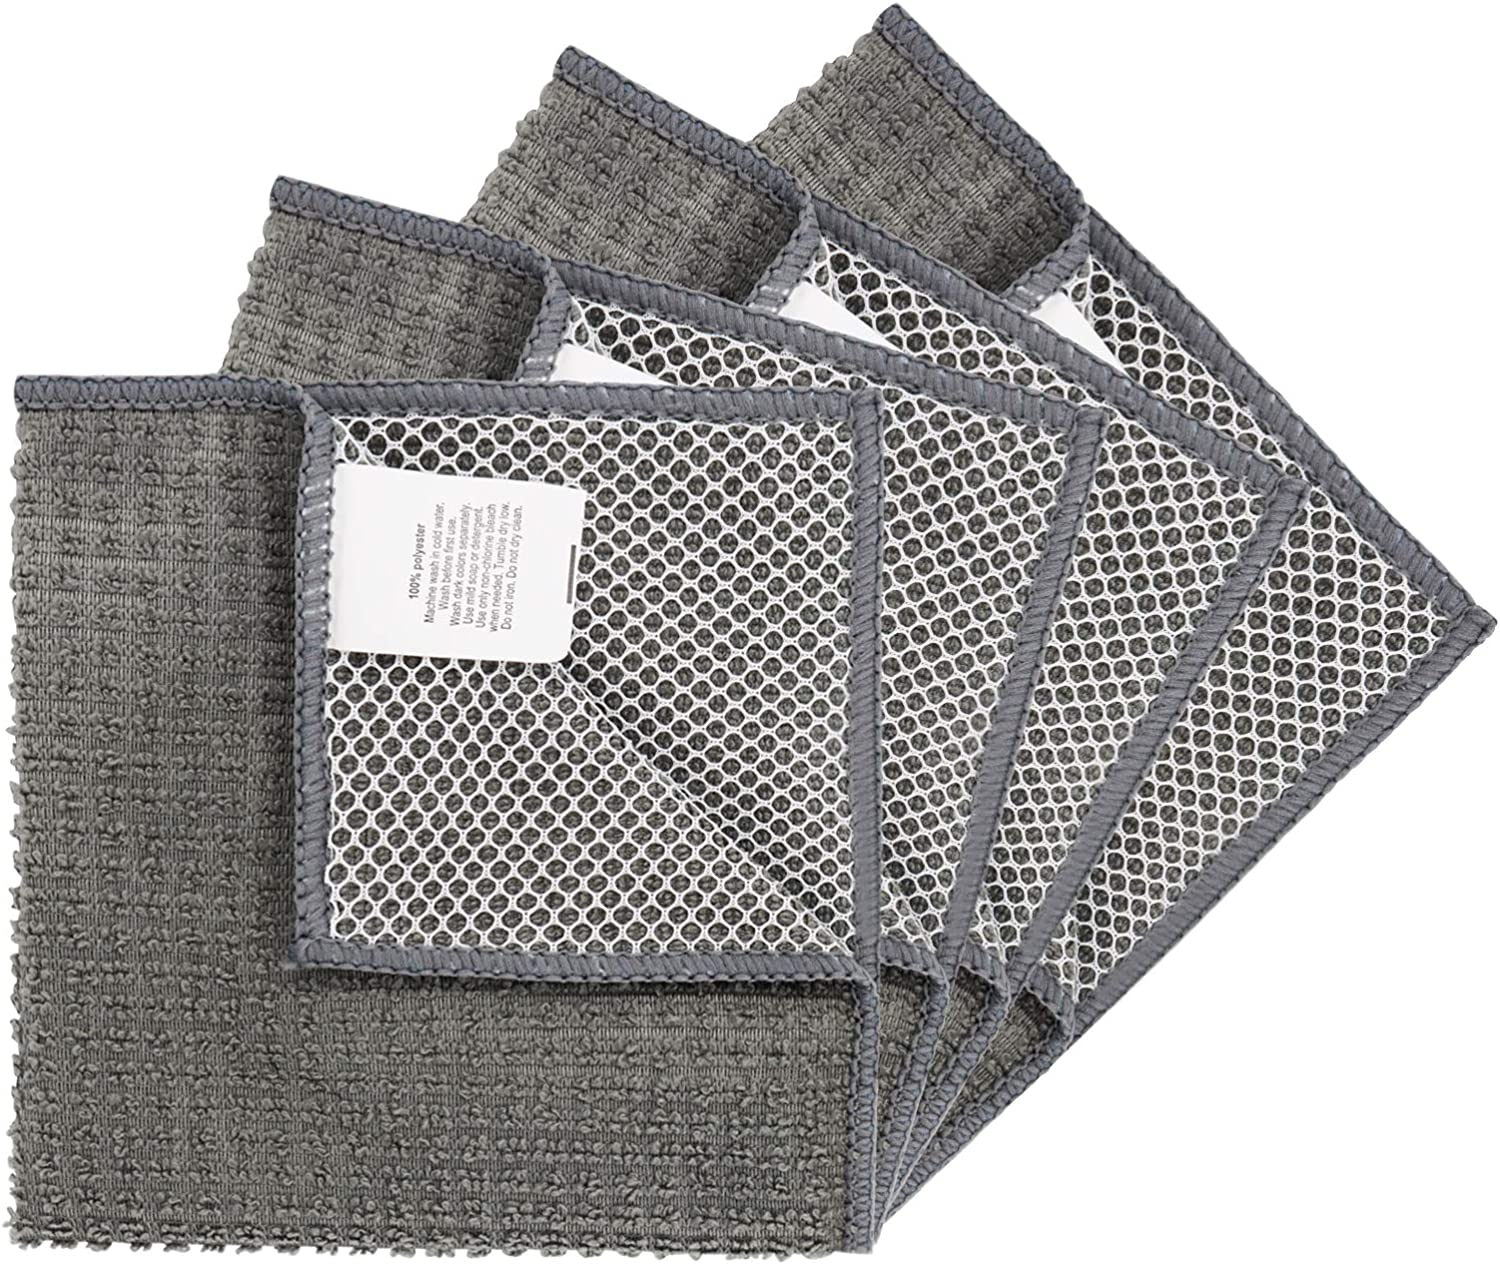 Microfiber Dish Cloths High Absorbent Dish Rags for Kitchen Cleaning Wash Cloth Towels with Scrub Side, Lint Free, Fast Drying (Gray-4pack, 12inch x 12inch)